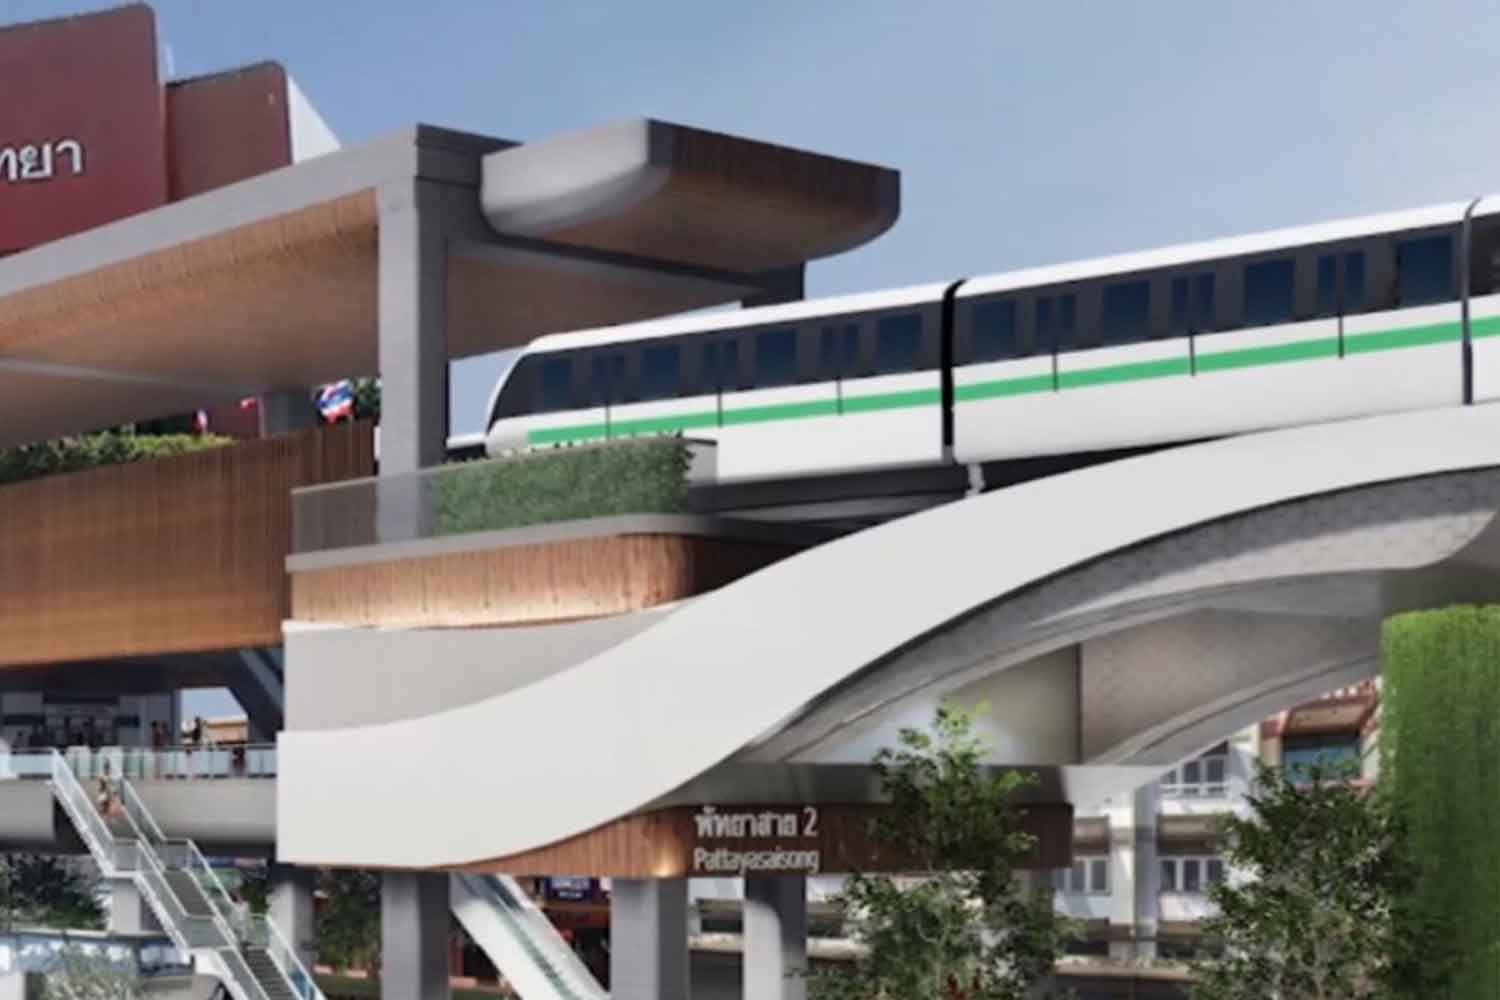 An artist's impression of a Pattaya monorail system. (Photo: Chaiyot Pupattanapong)